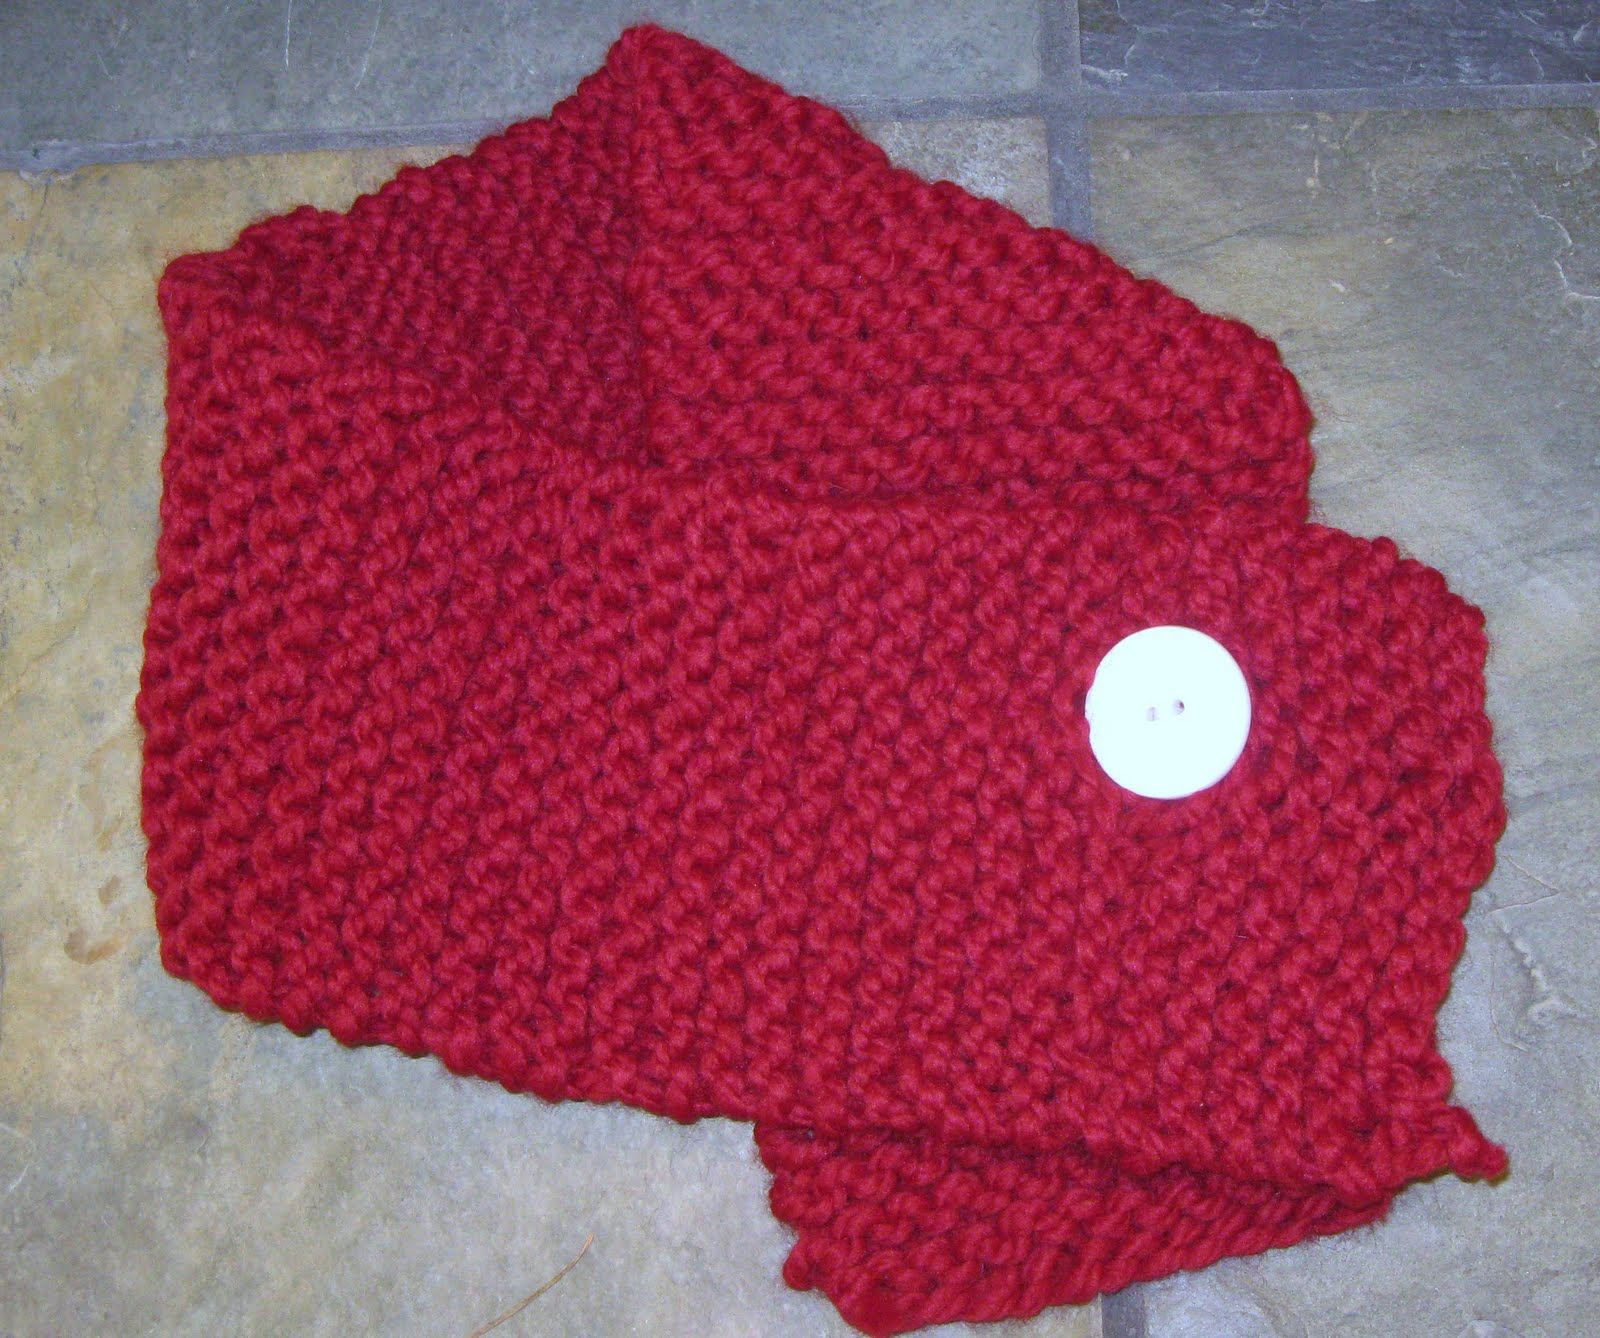 Knitting Placeholder No Stitch Made : simply steinberger: No sew and Knitting